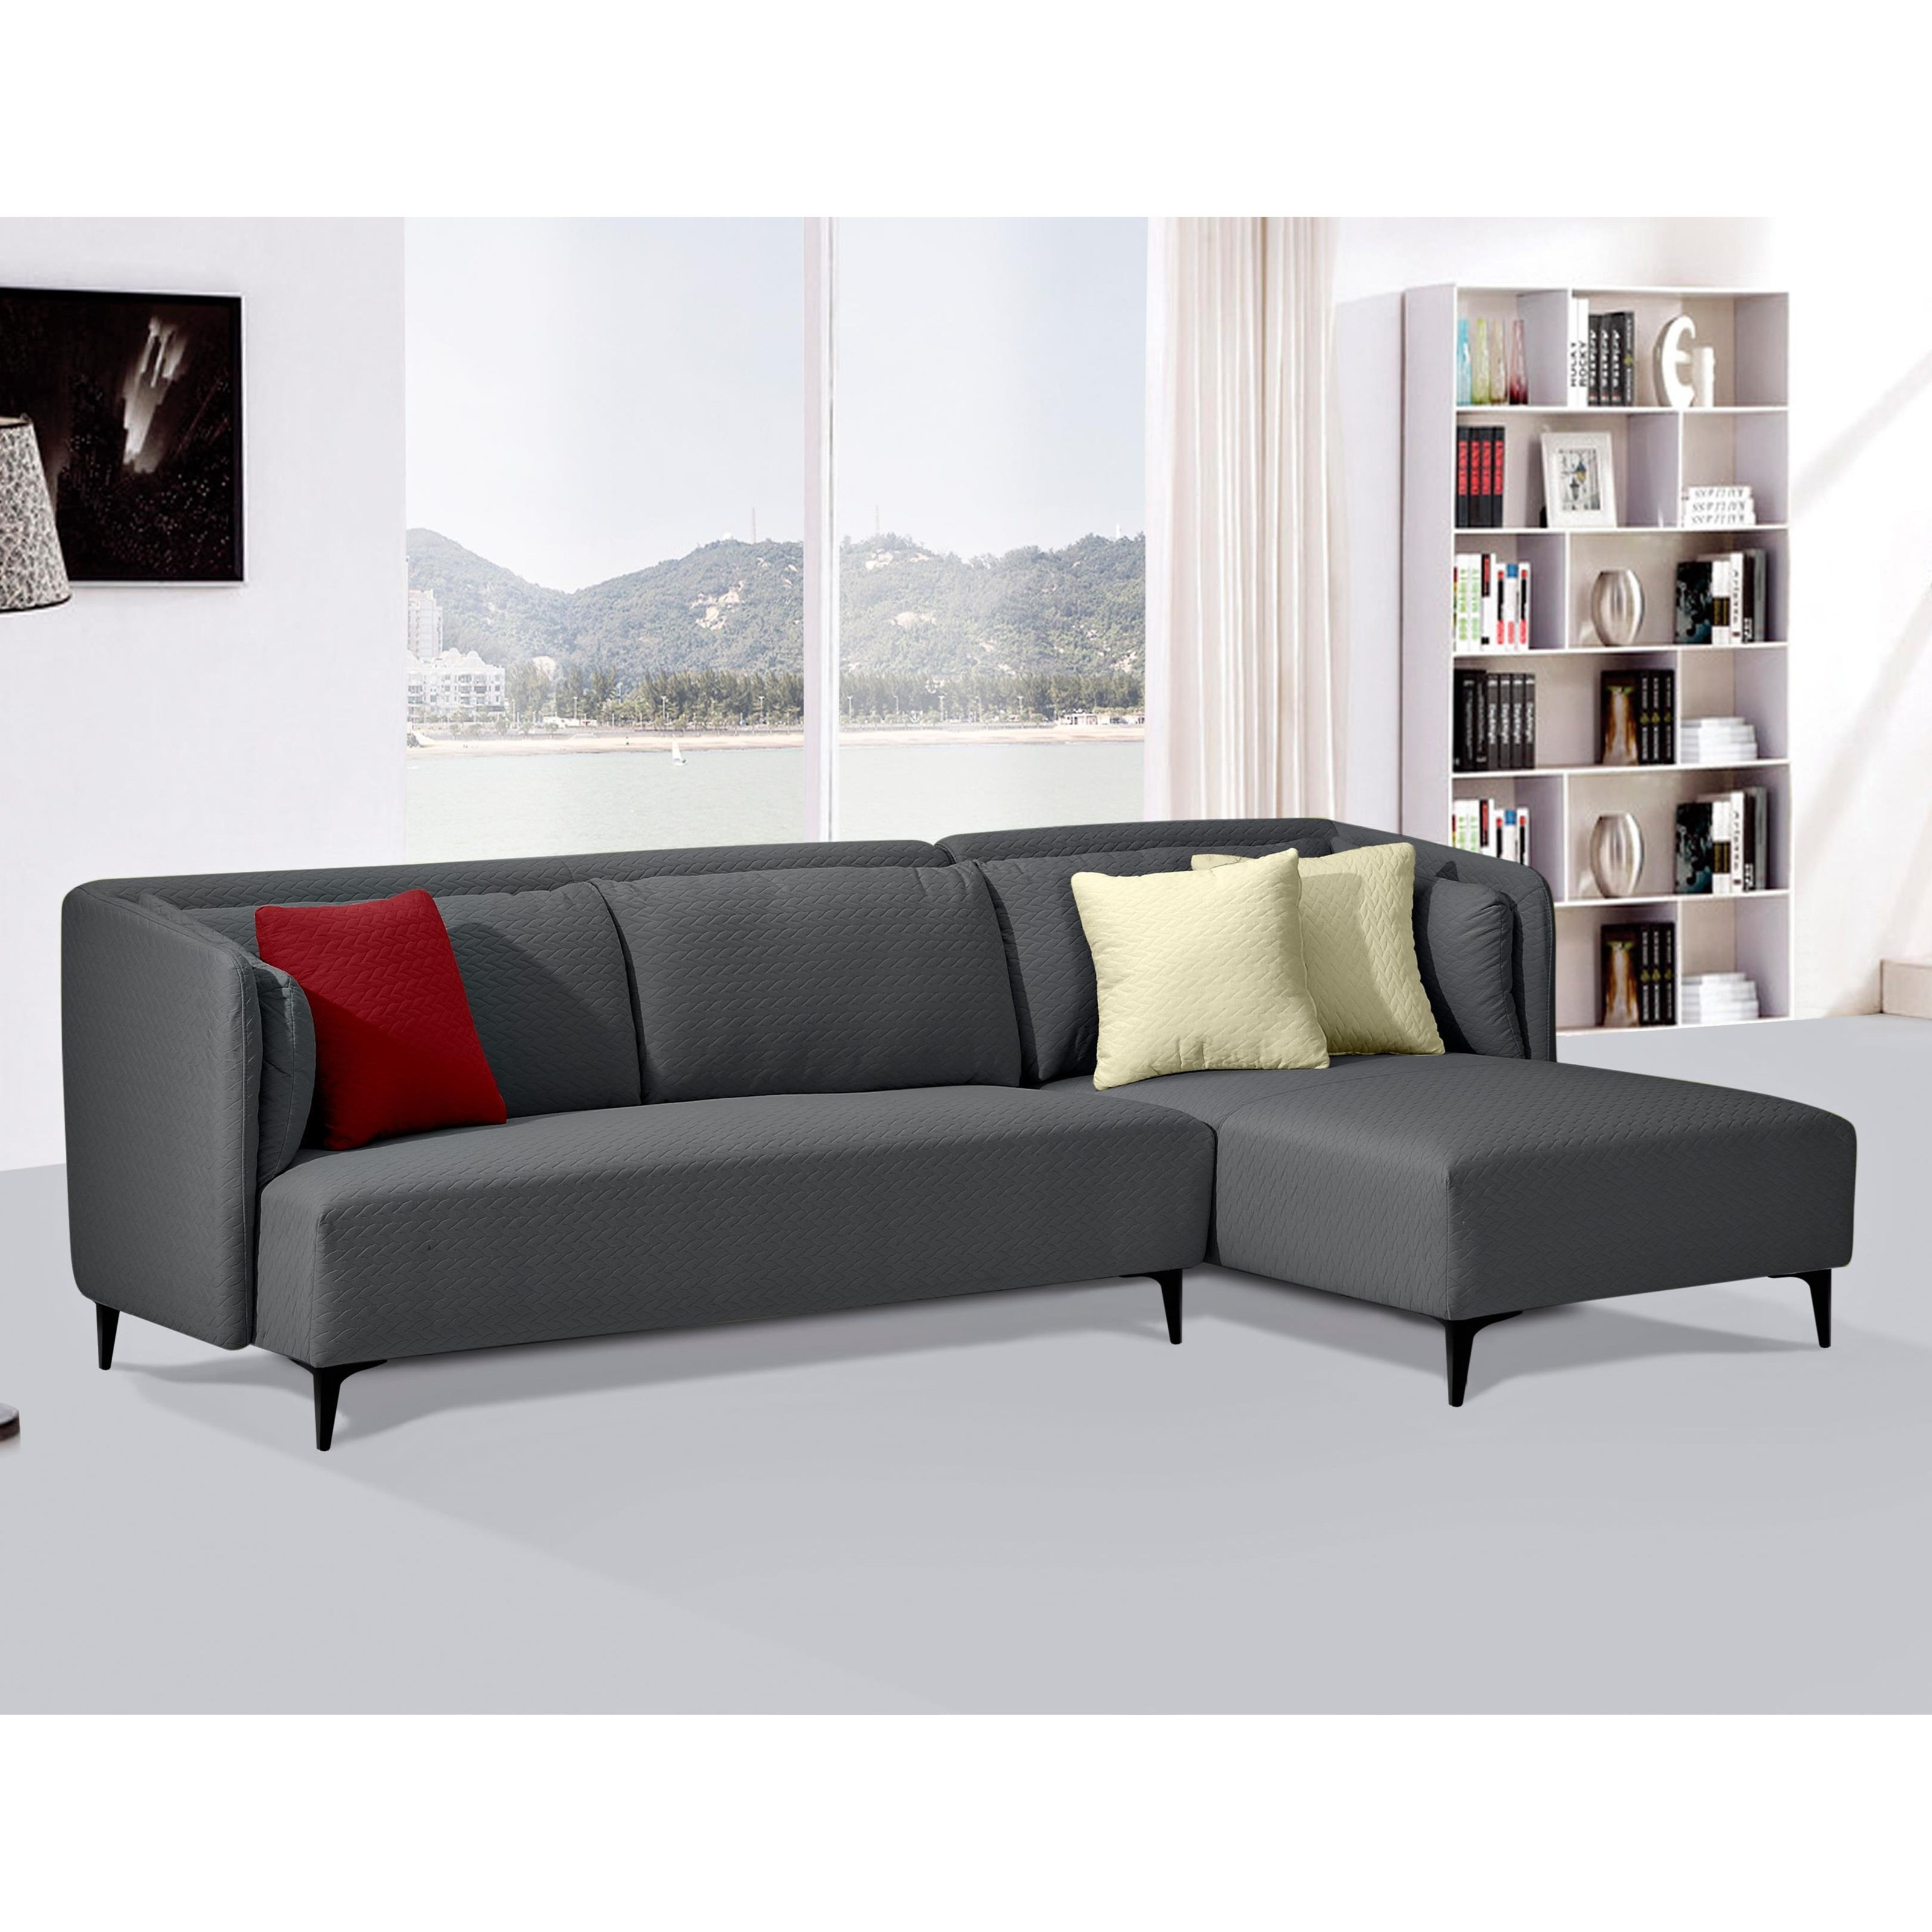 diamond sofa dylan sectional red knot sectional sofas. Black Bedroom Furniture Sets. Home Design Ideas